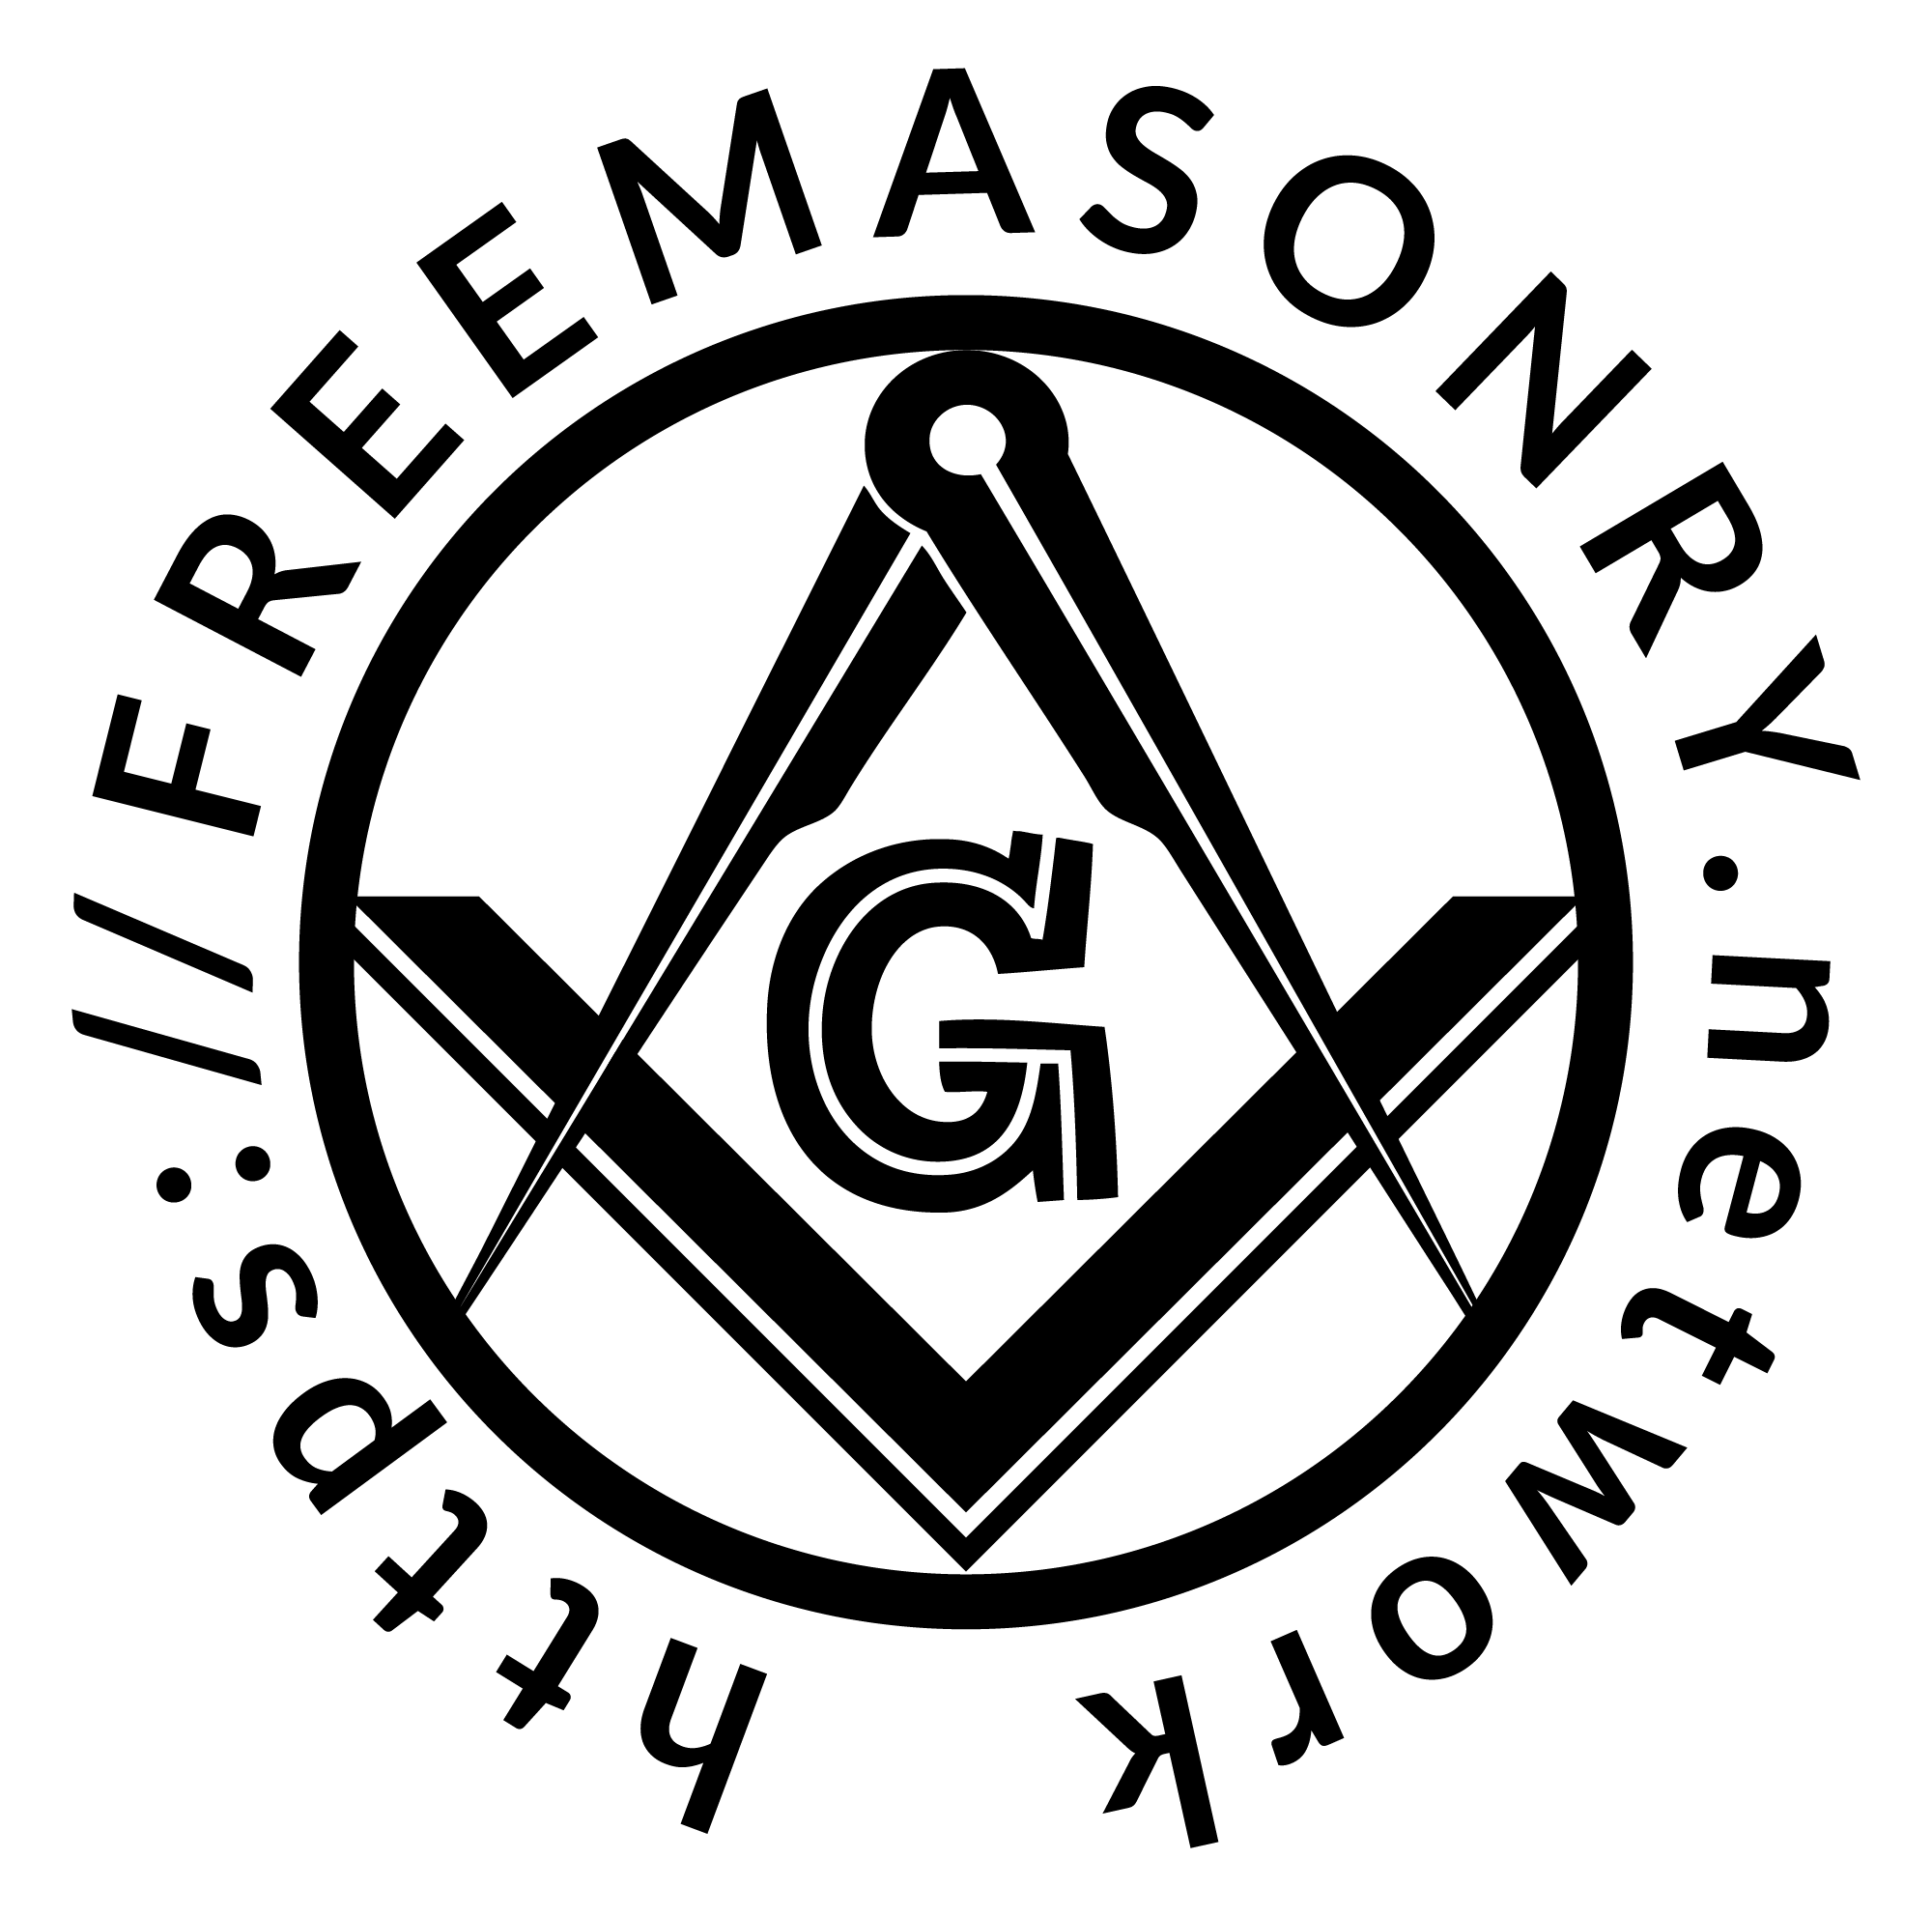 MASONIC OATHS AND PENALTIES